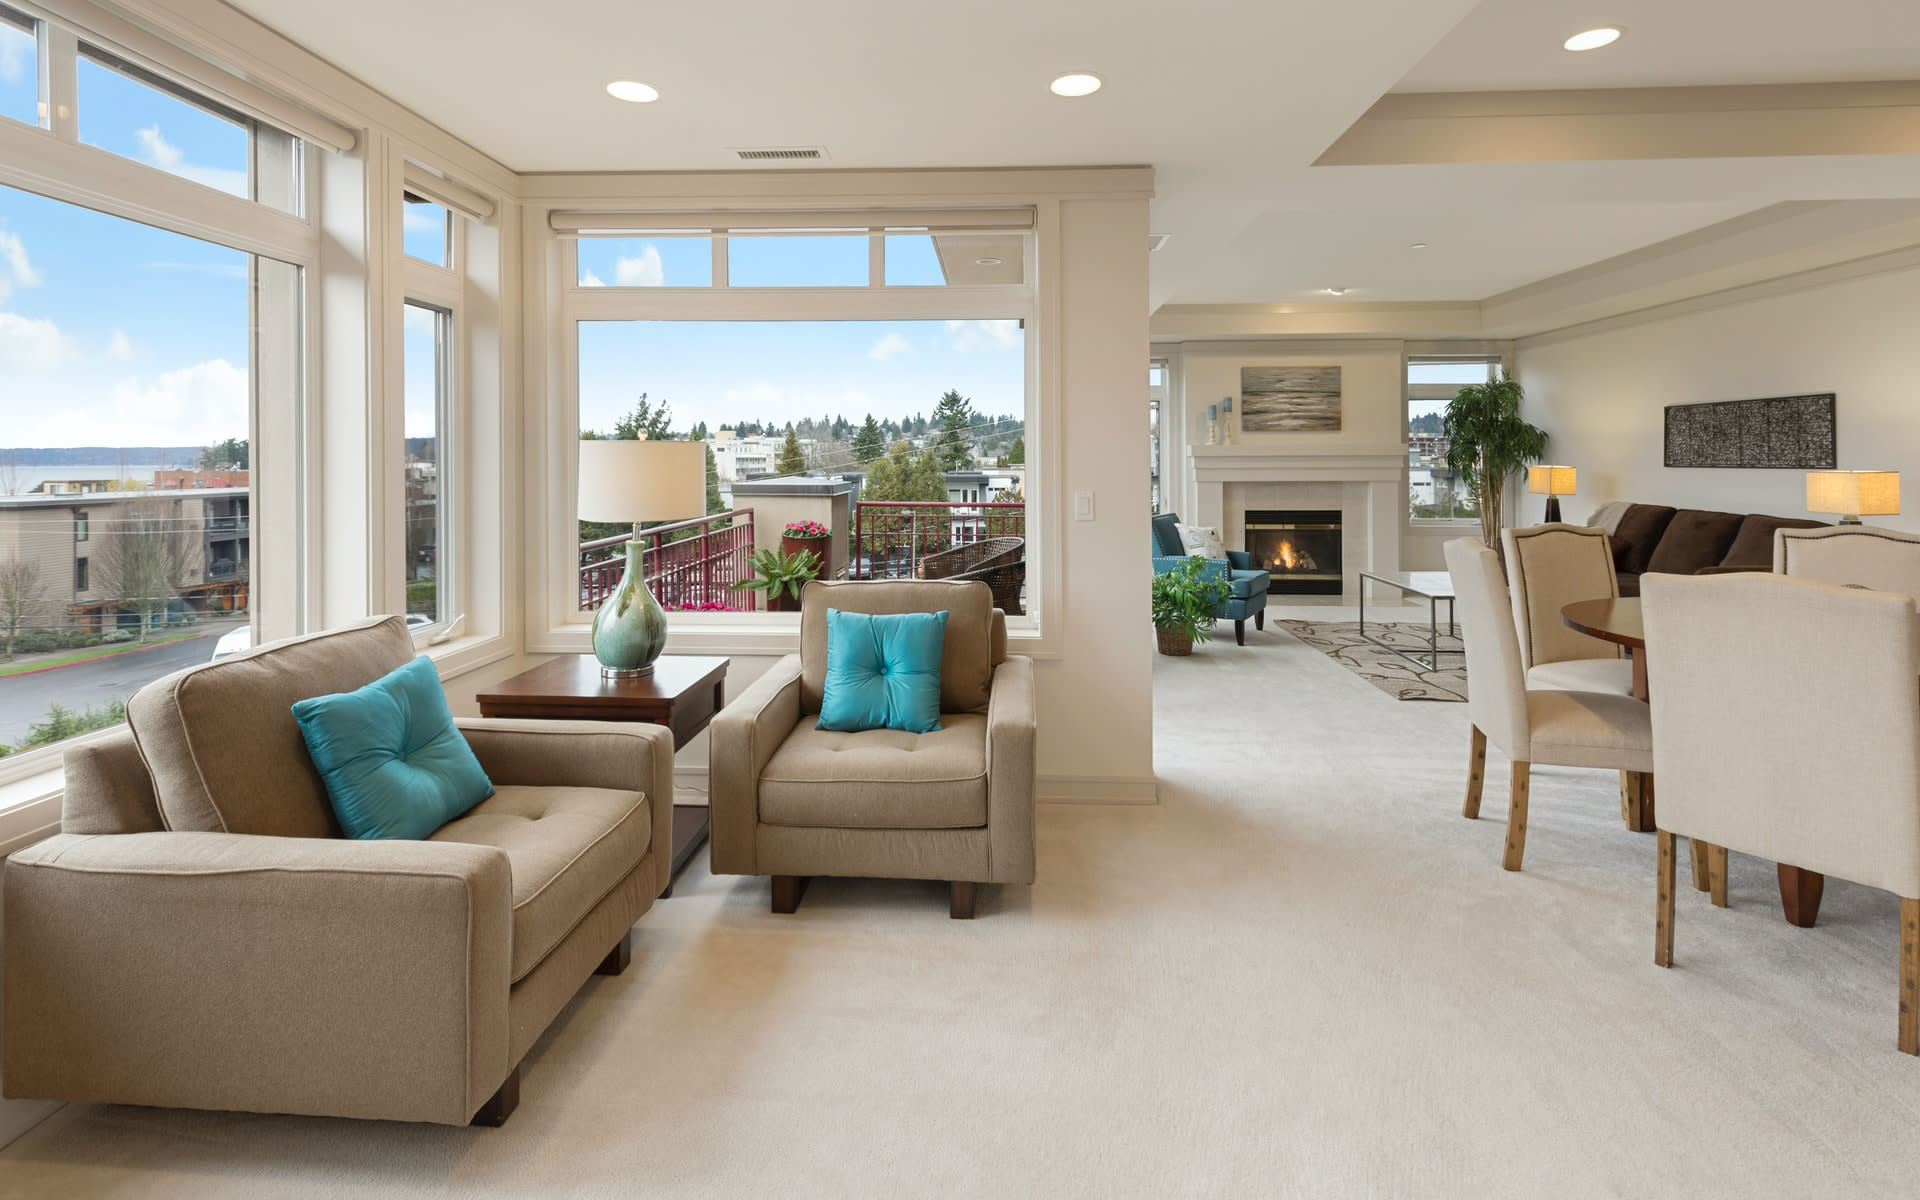 Real Estate Agencies Put the Spotlight on Staging